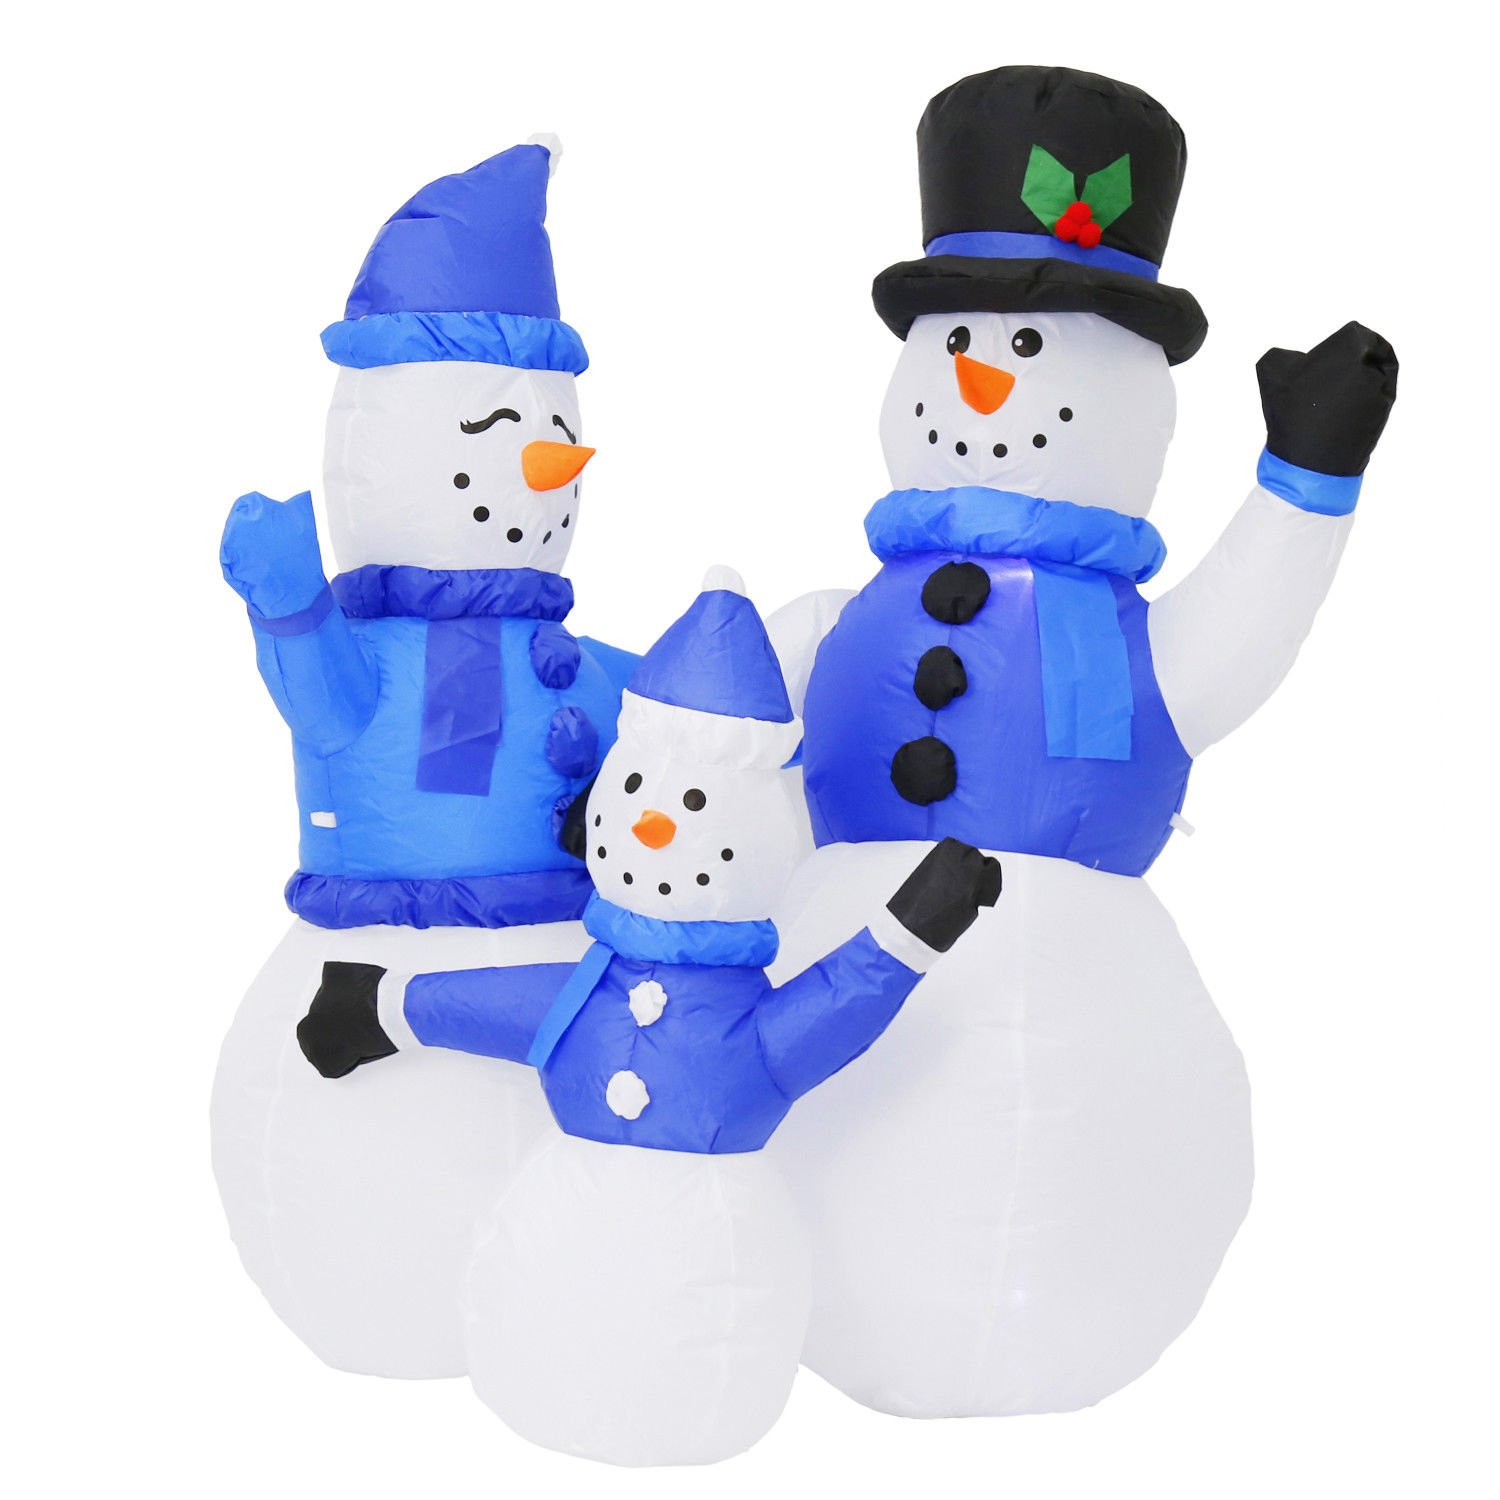 4' Christmas Inflatable Snowman Family Airblown Yard Lawn Indoor Decor +eBook